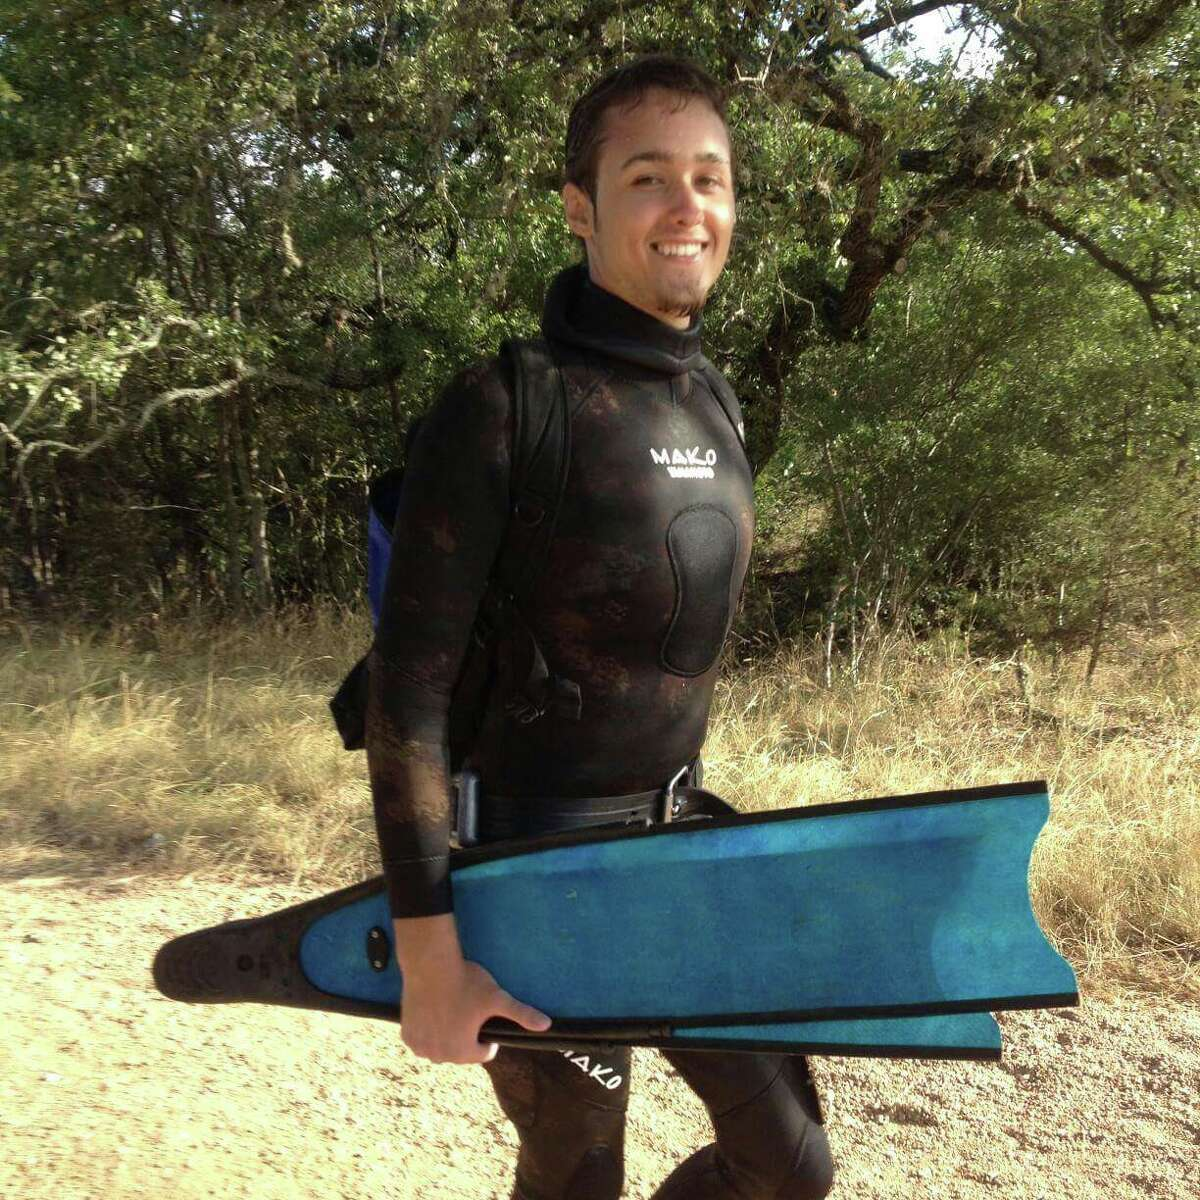 Free diving is exactly what it sounds like, diving free of any supplemental oxygen other than one's own lungs. His multiple plunges into the Jacob's Well has made him an expert at what has been called